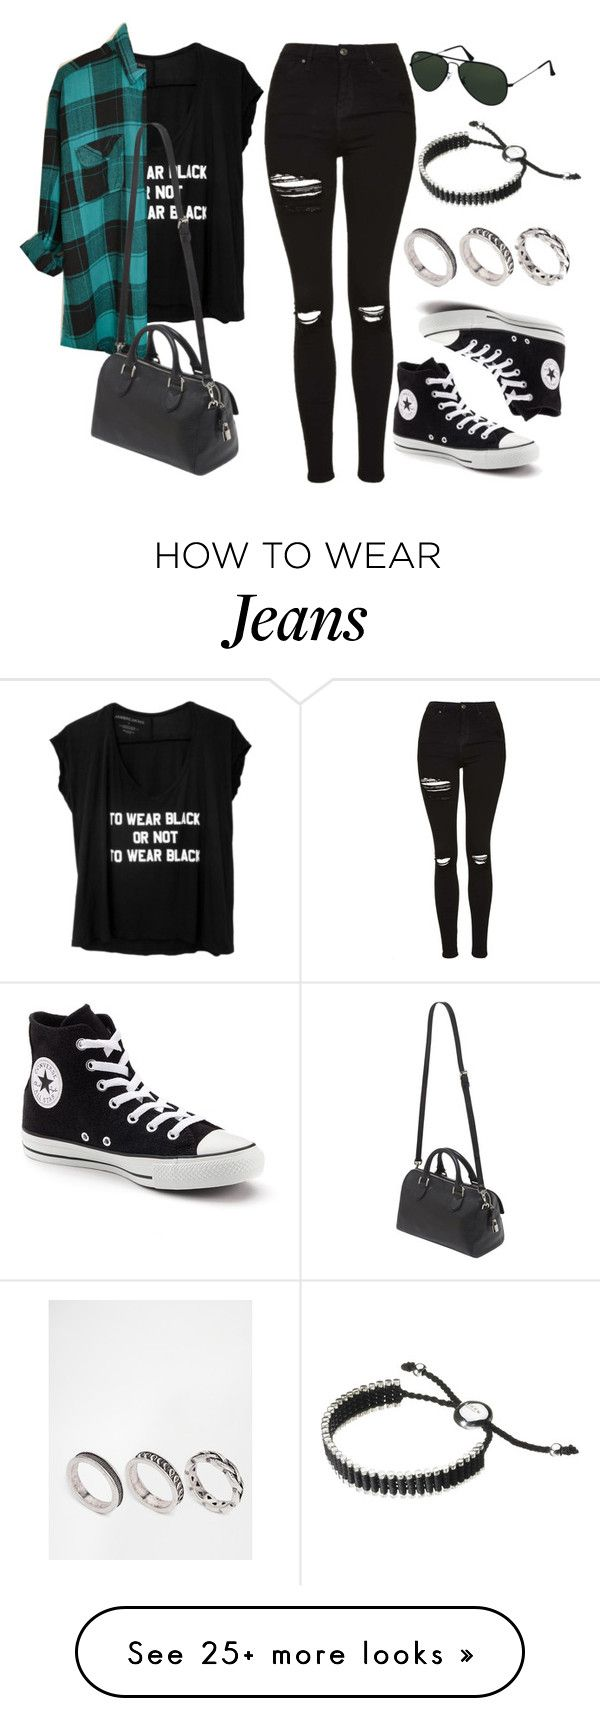 """Style #10192"" by vany-alvarado on Polyvore featuring Topshop, Converse, Mulberry, Ray-Ban, ASOS and Links of London"